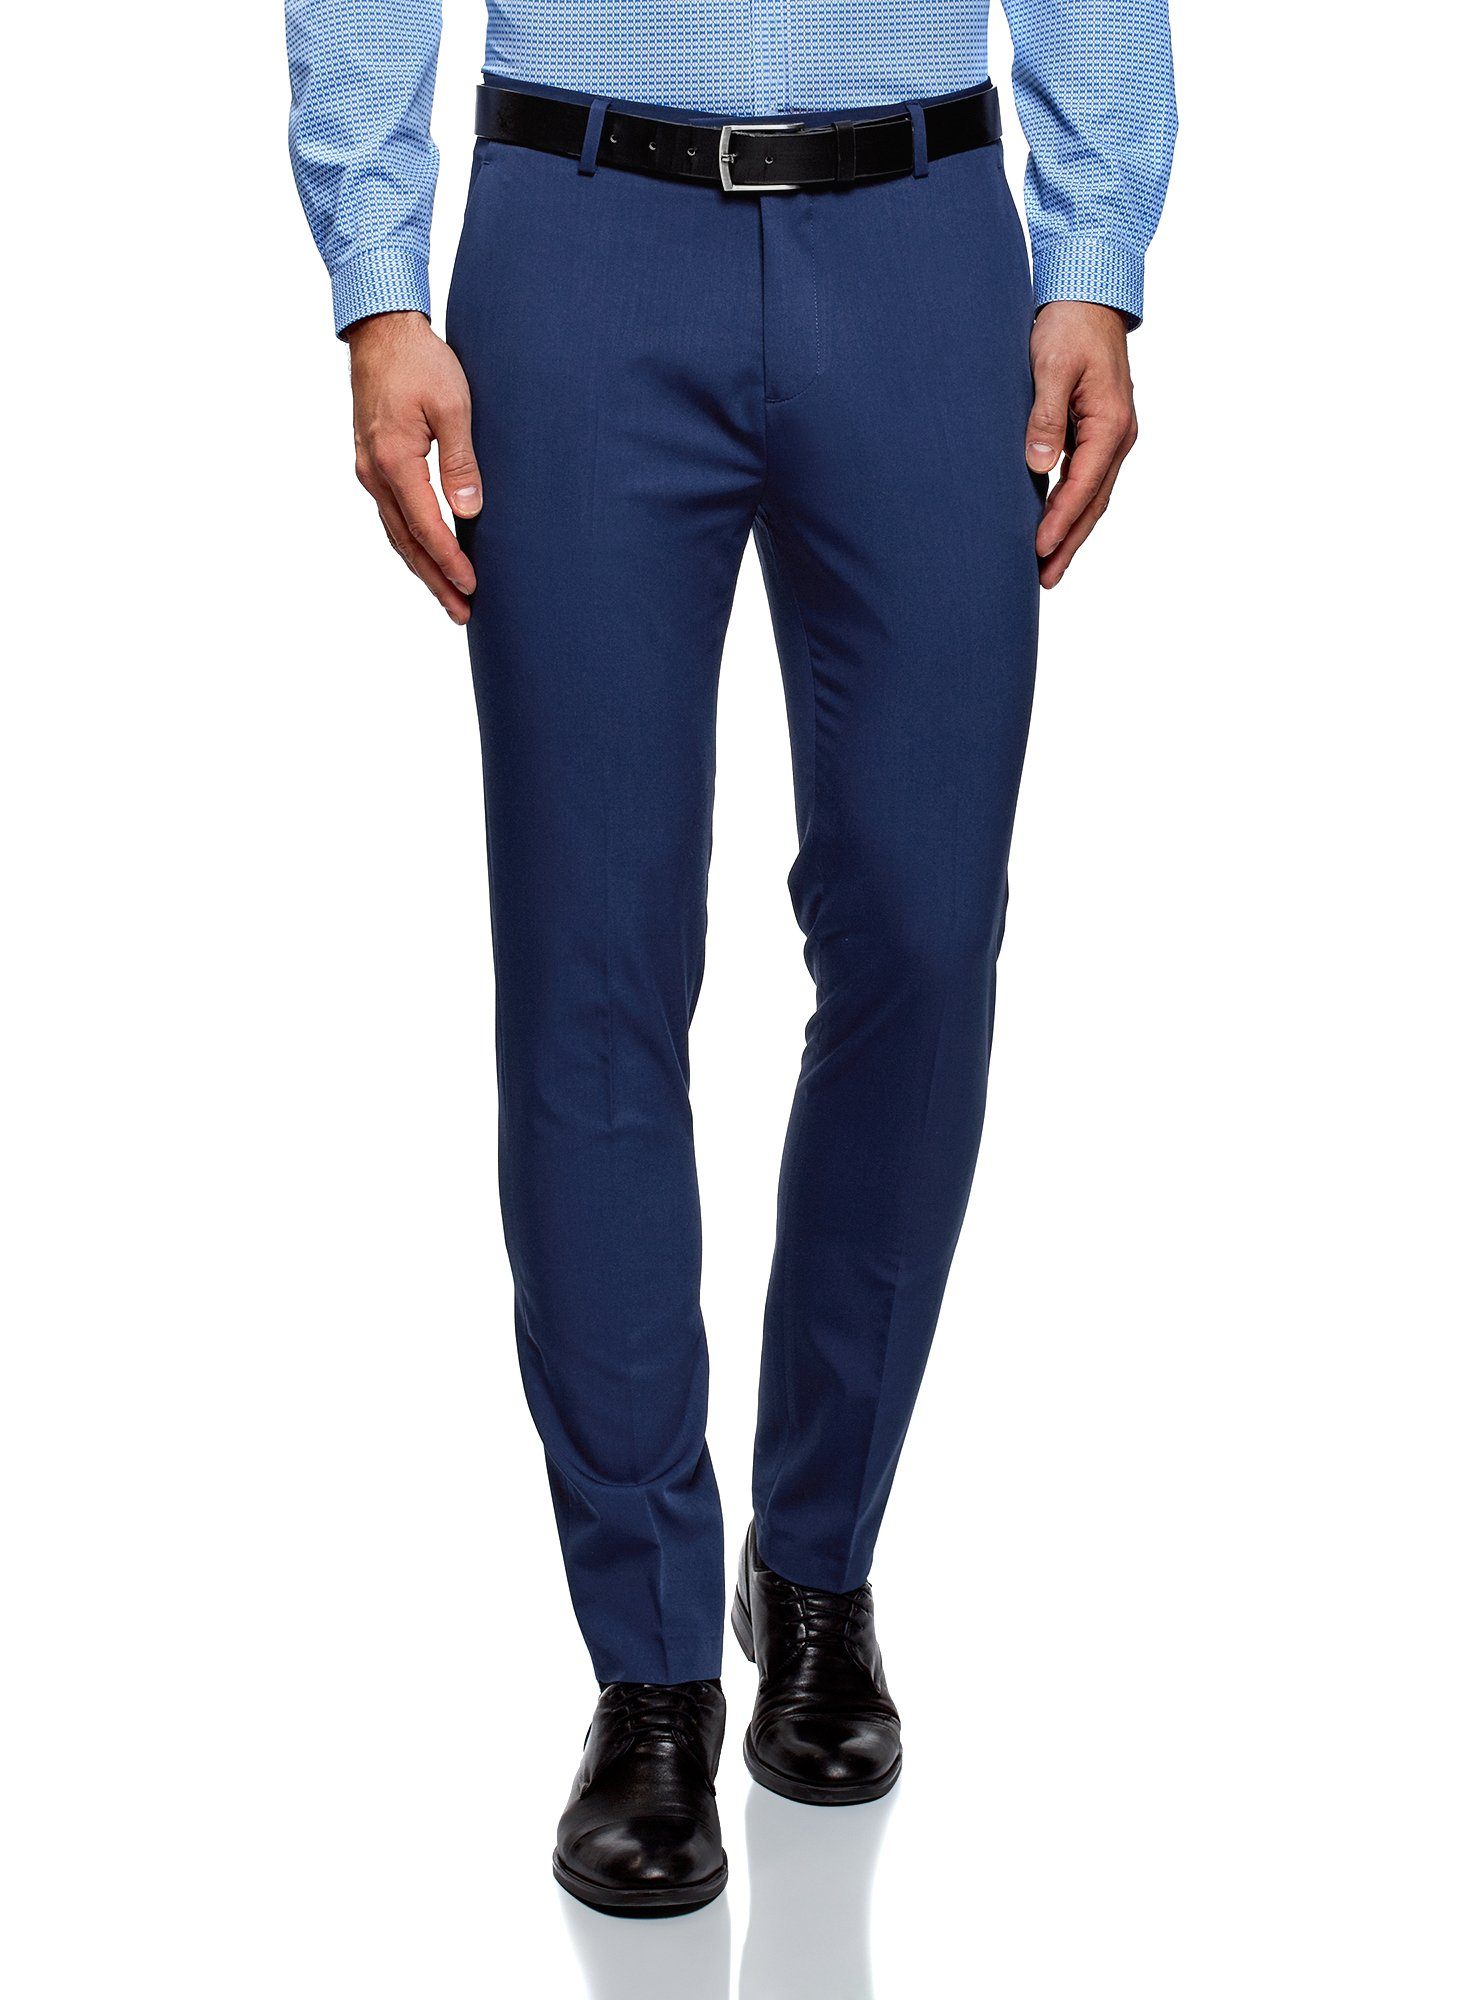 oodji Ultra Men's Lightweight Slim-Fit Trousers, Blue, US 34 / EU 46 / L